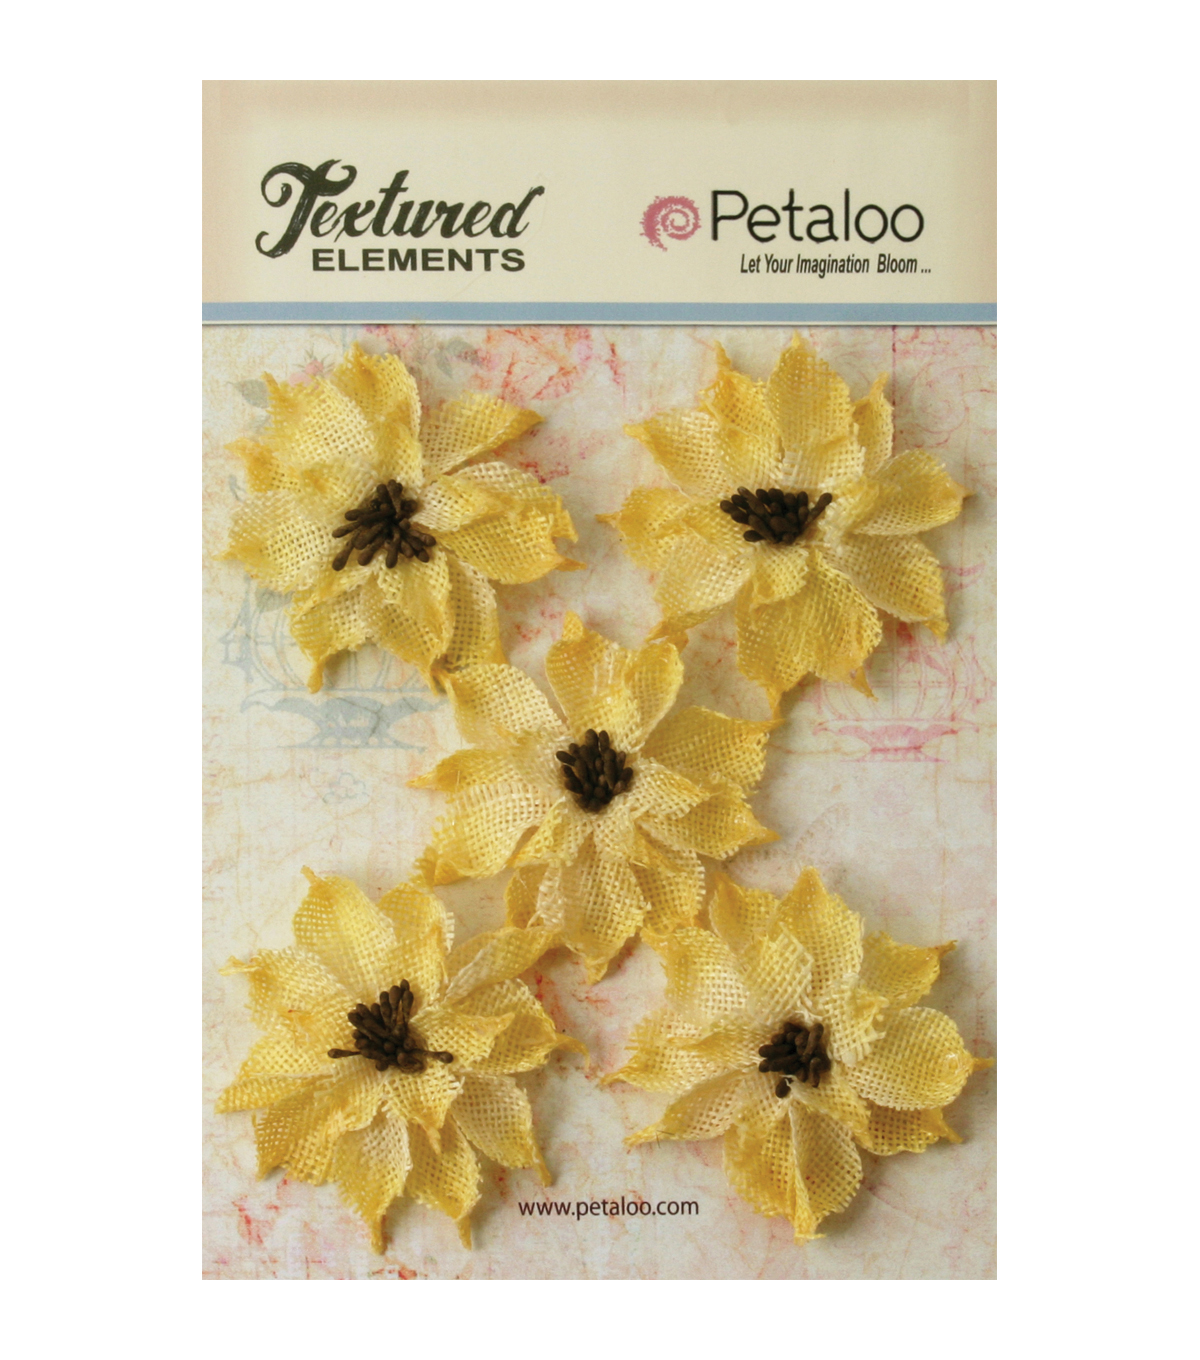 Petaloo Textured Elements Burlap Wild Sunflowers 2.5\u0027\u0027